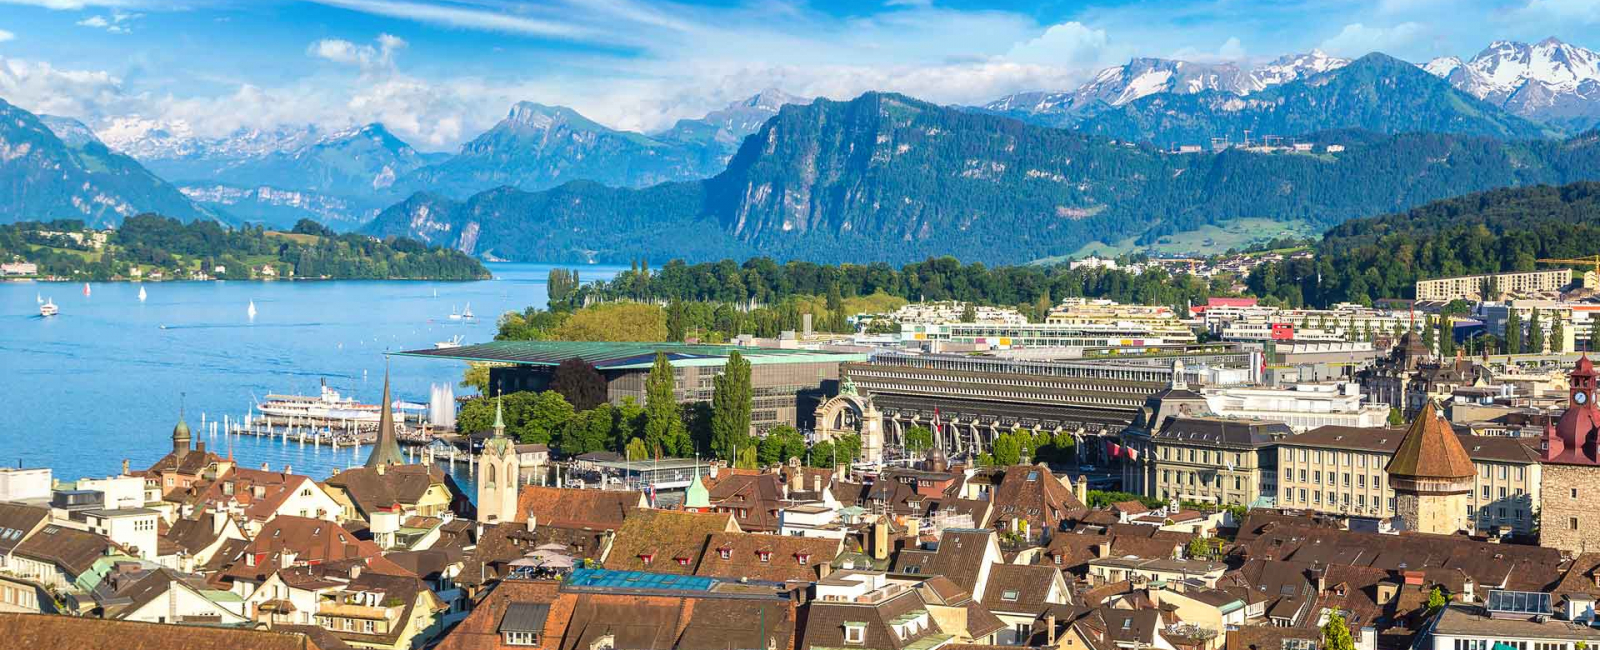 Beethoven Symphony Cycle - Symphonies 8 & 9 (Lucerne)